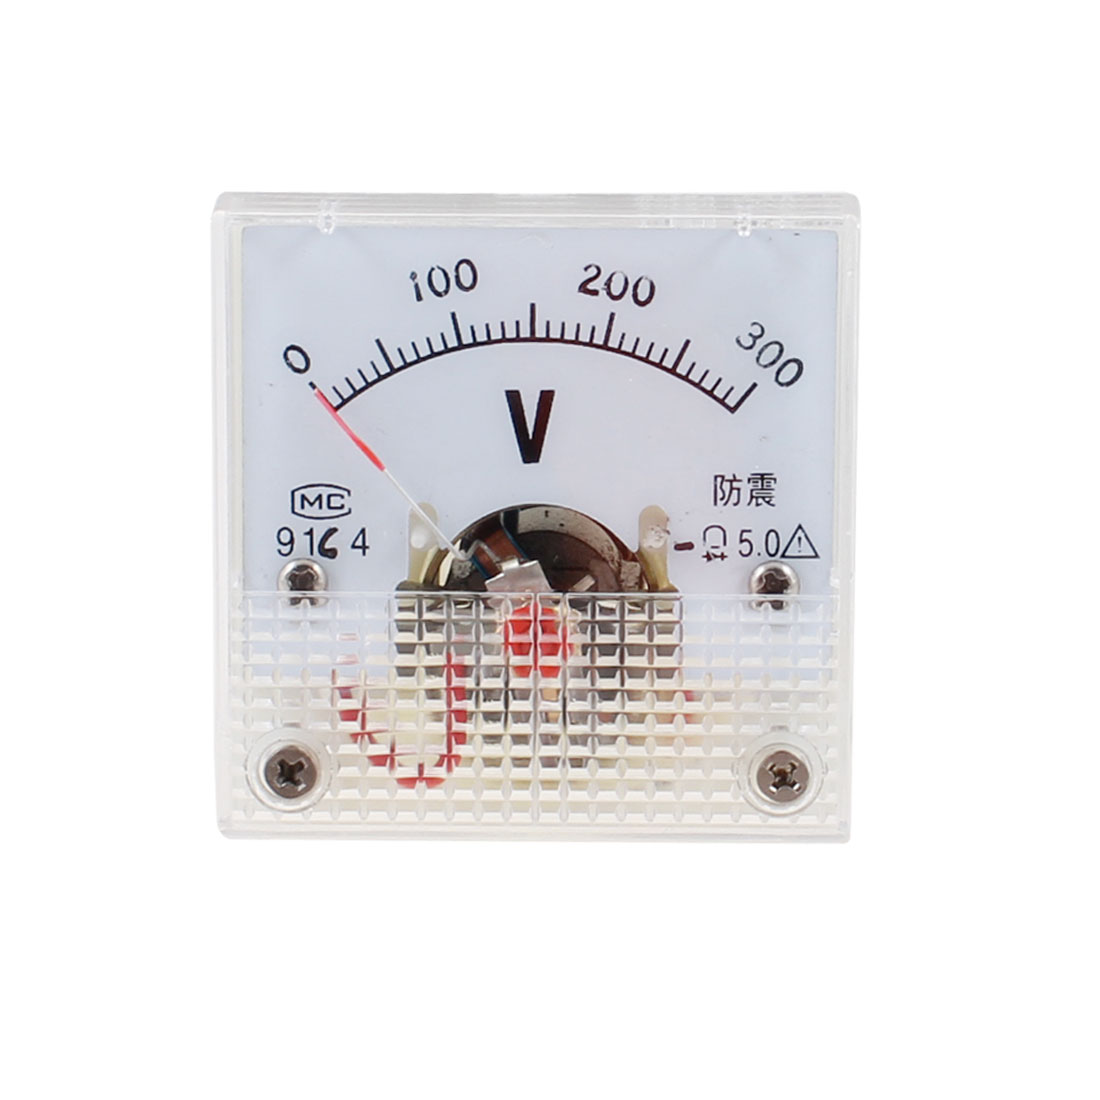 91C4 DC 0-300V Rectangle Analog Panel Volt Meter Voltmeter Gauge